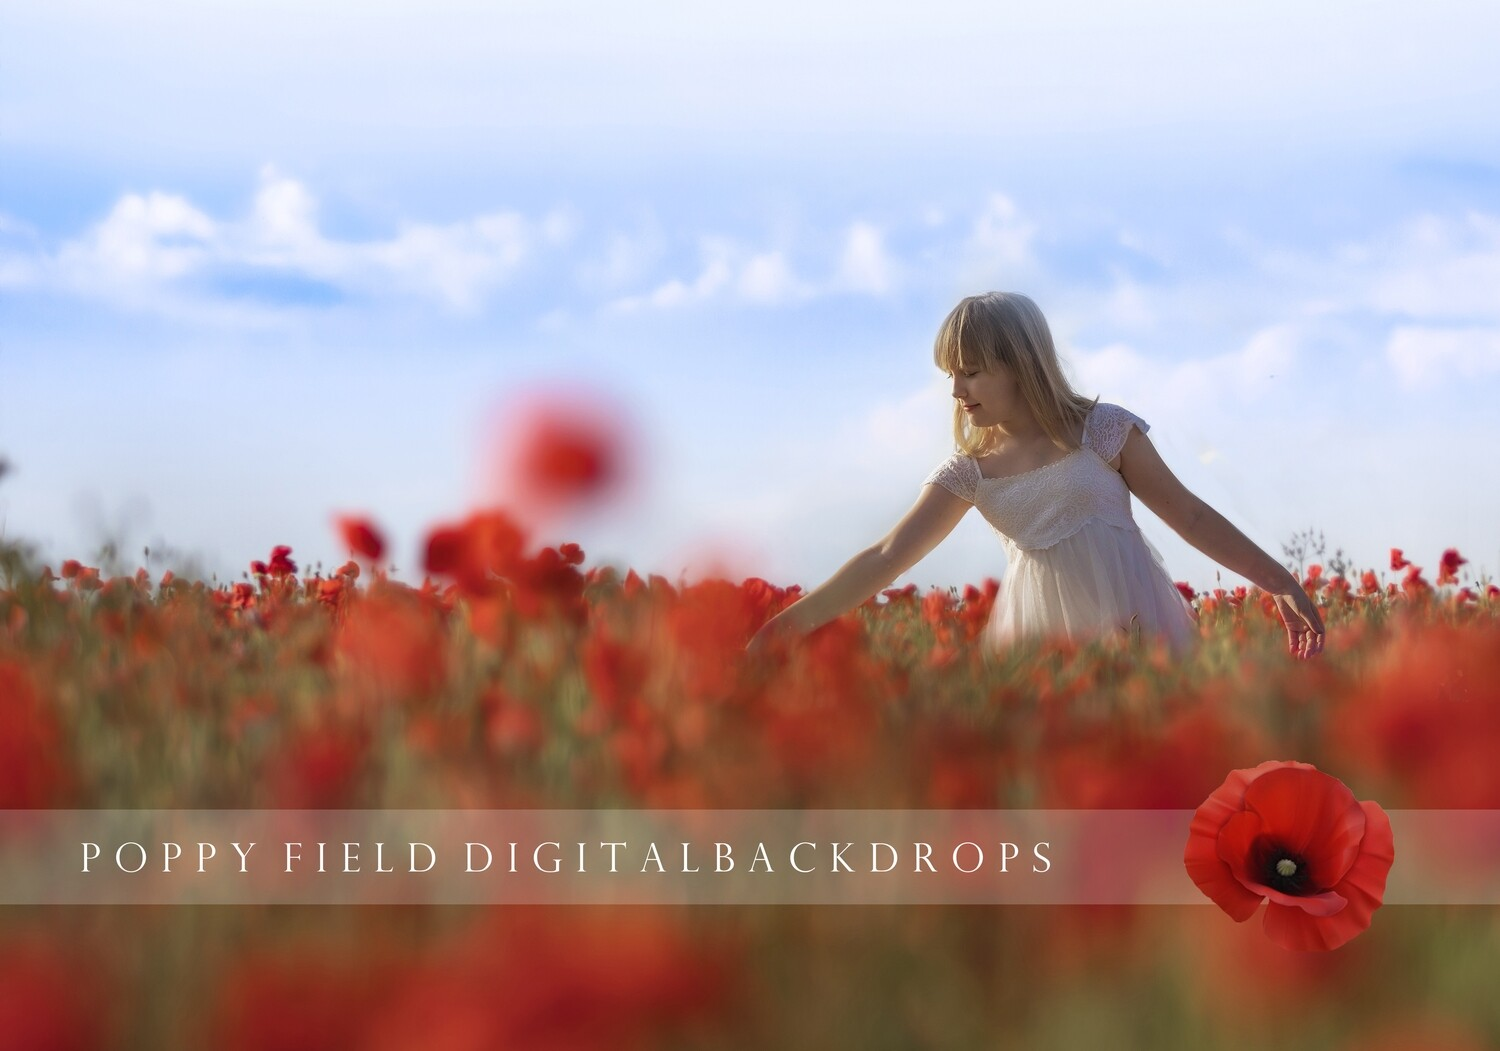 24  Summer Creamy Poppy Field Digital backdrops, digital background, poppy backgrounds